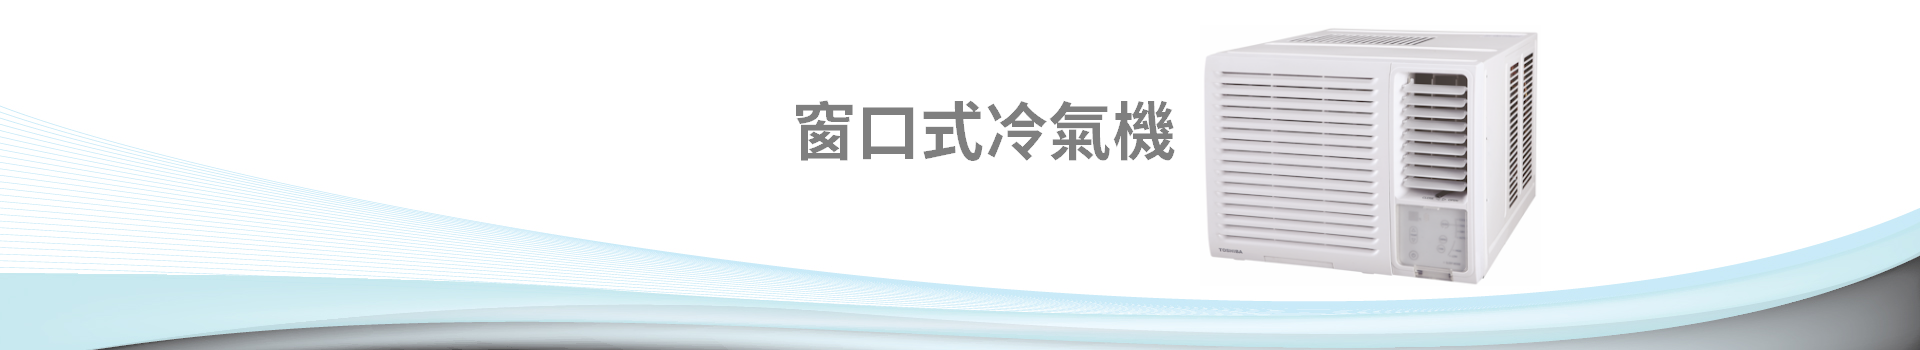 window-type air conditioner banner